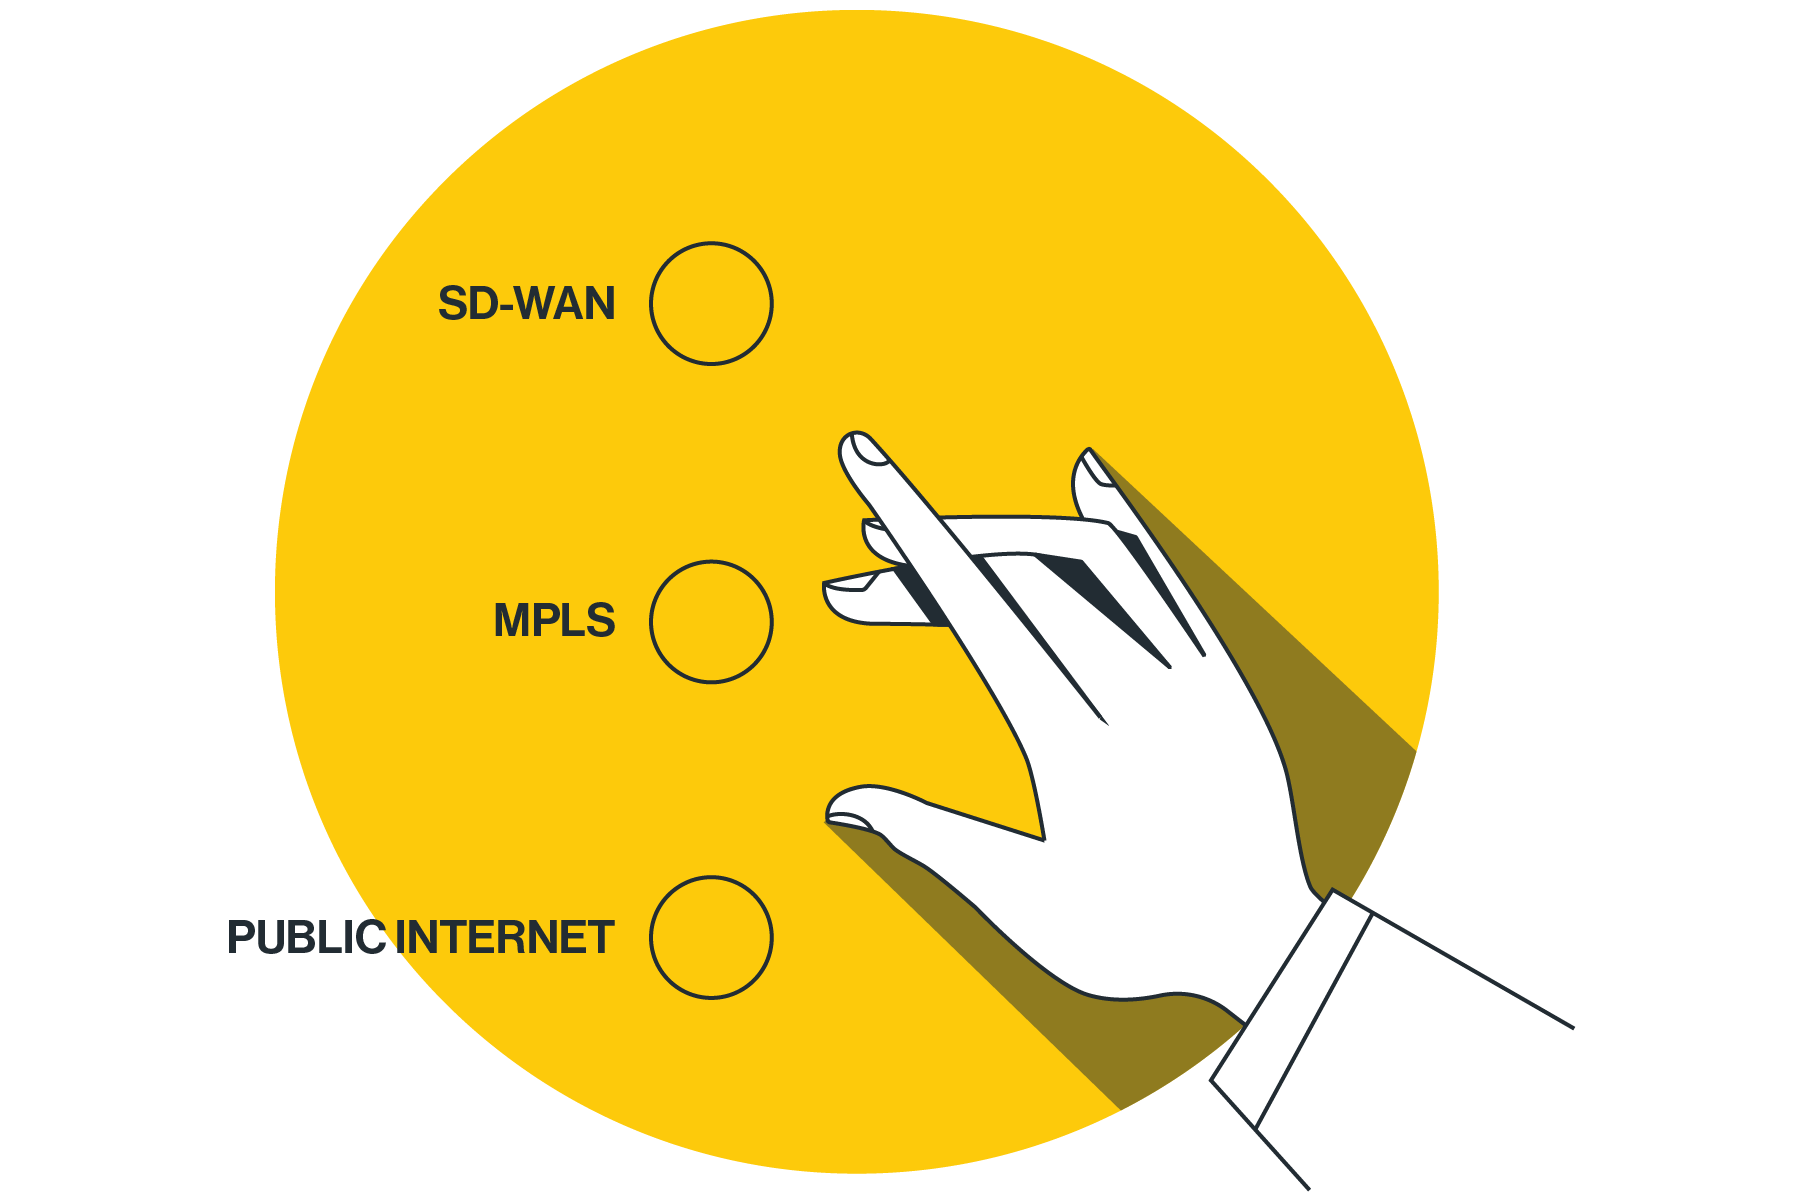 SD-WAN vs. MPLS vs. public internet